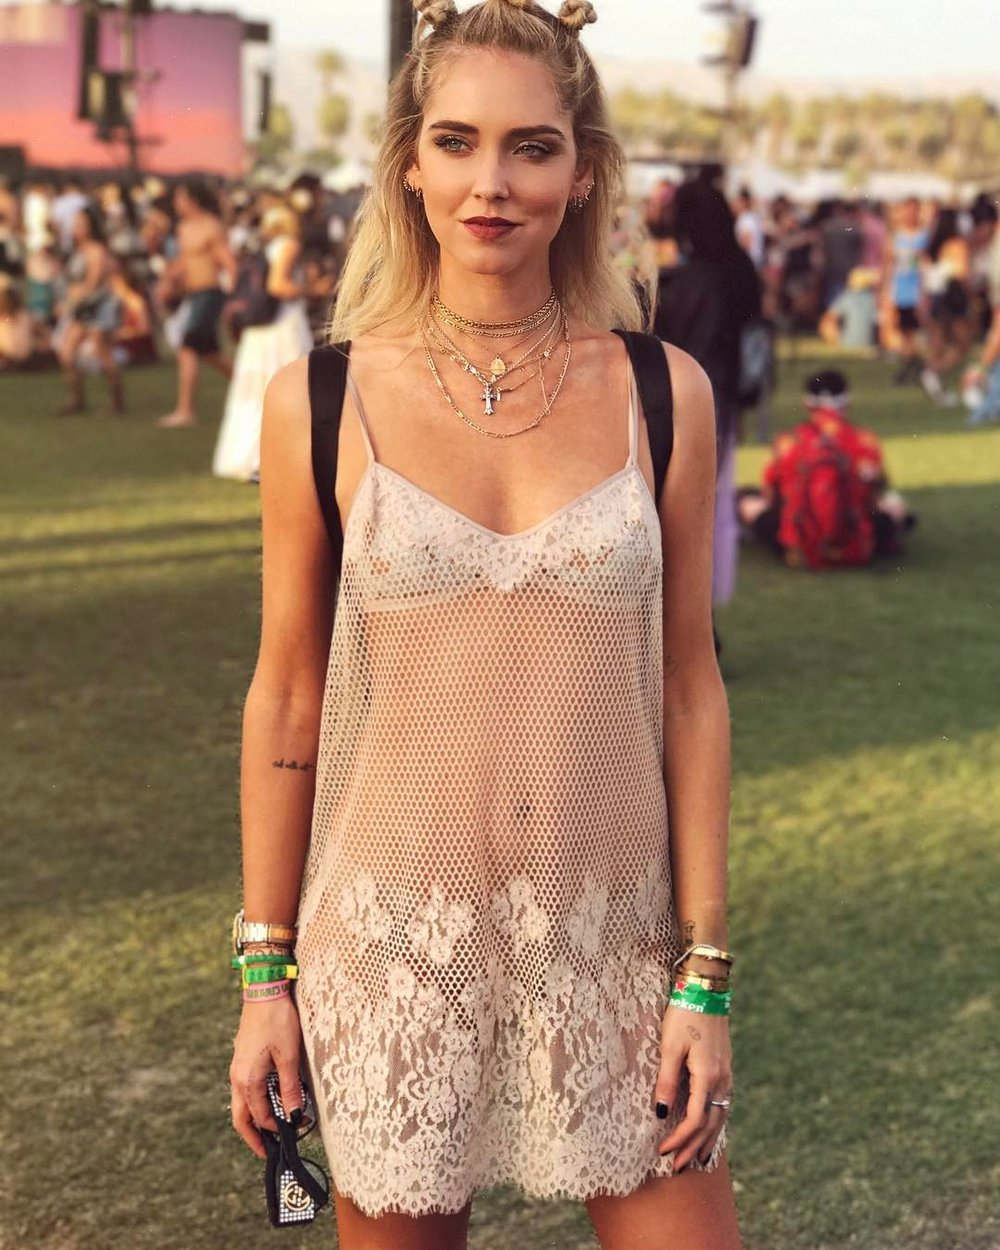 Chiara Ferragni in a very cute dress enjoying Coachella 2017.